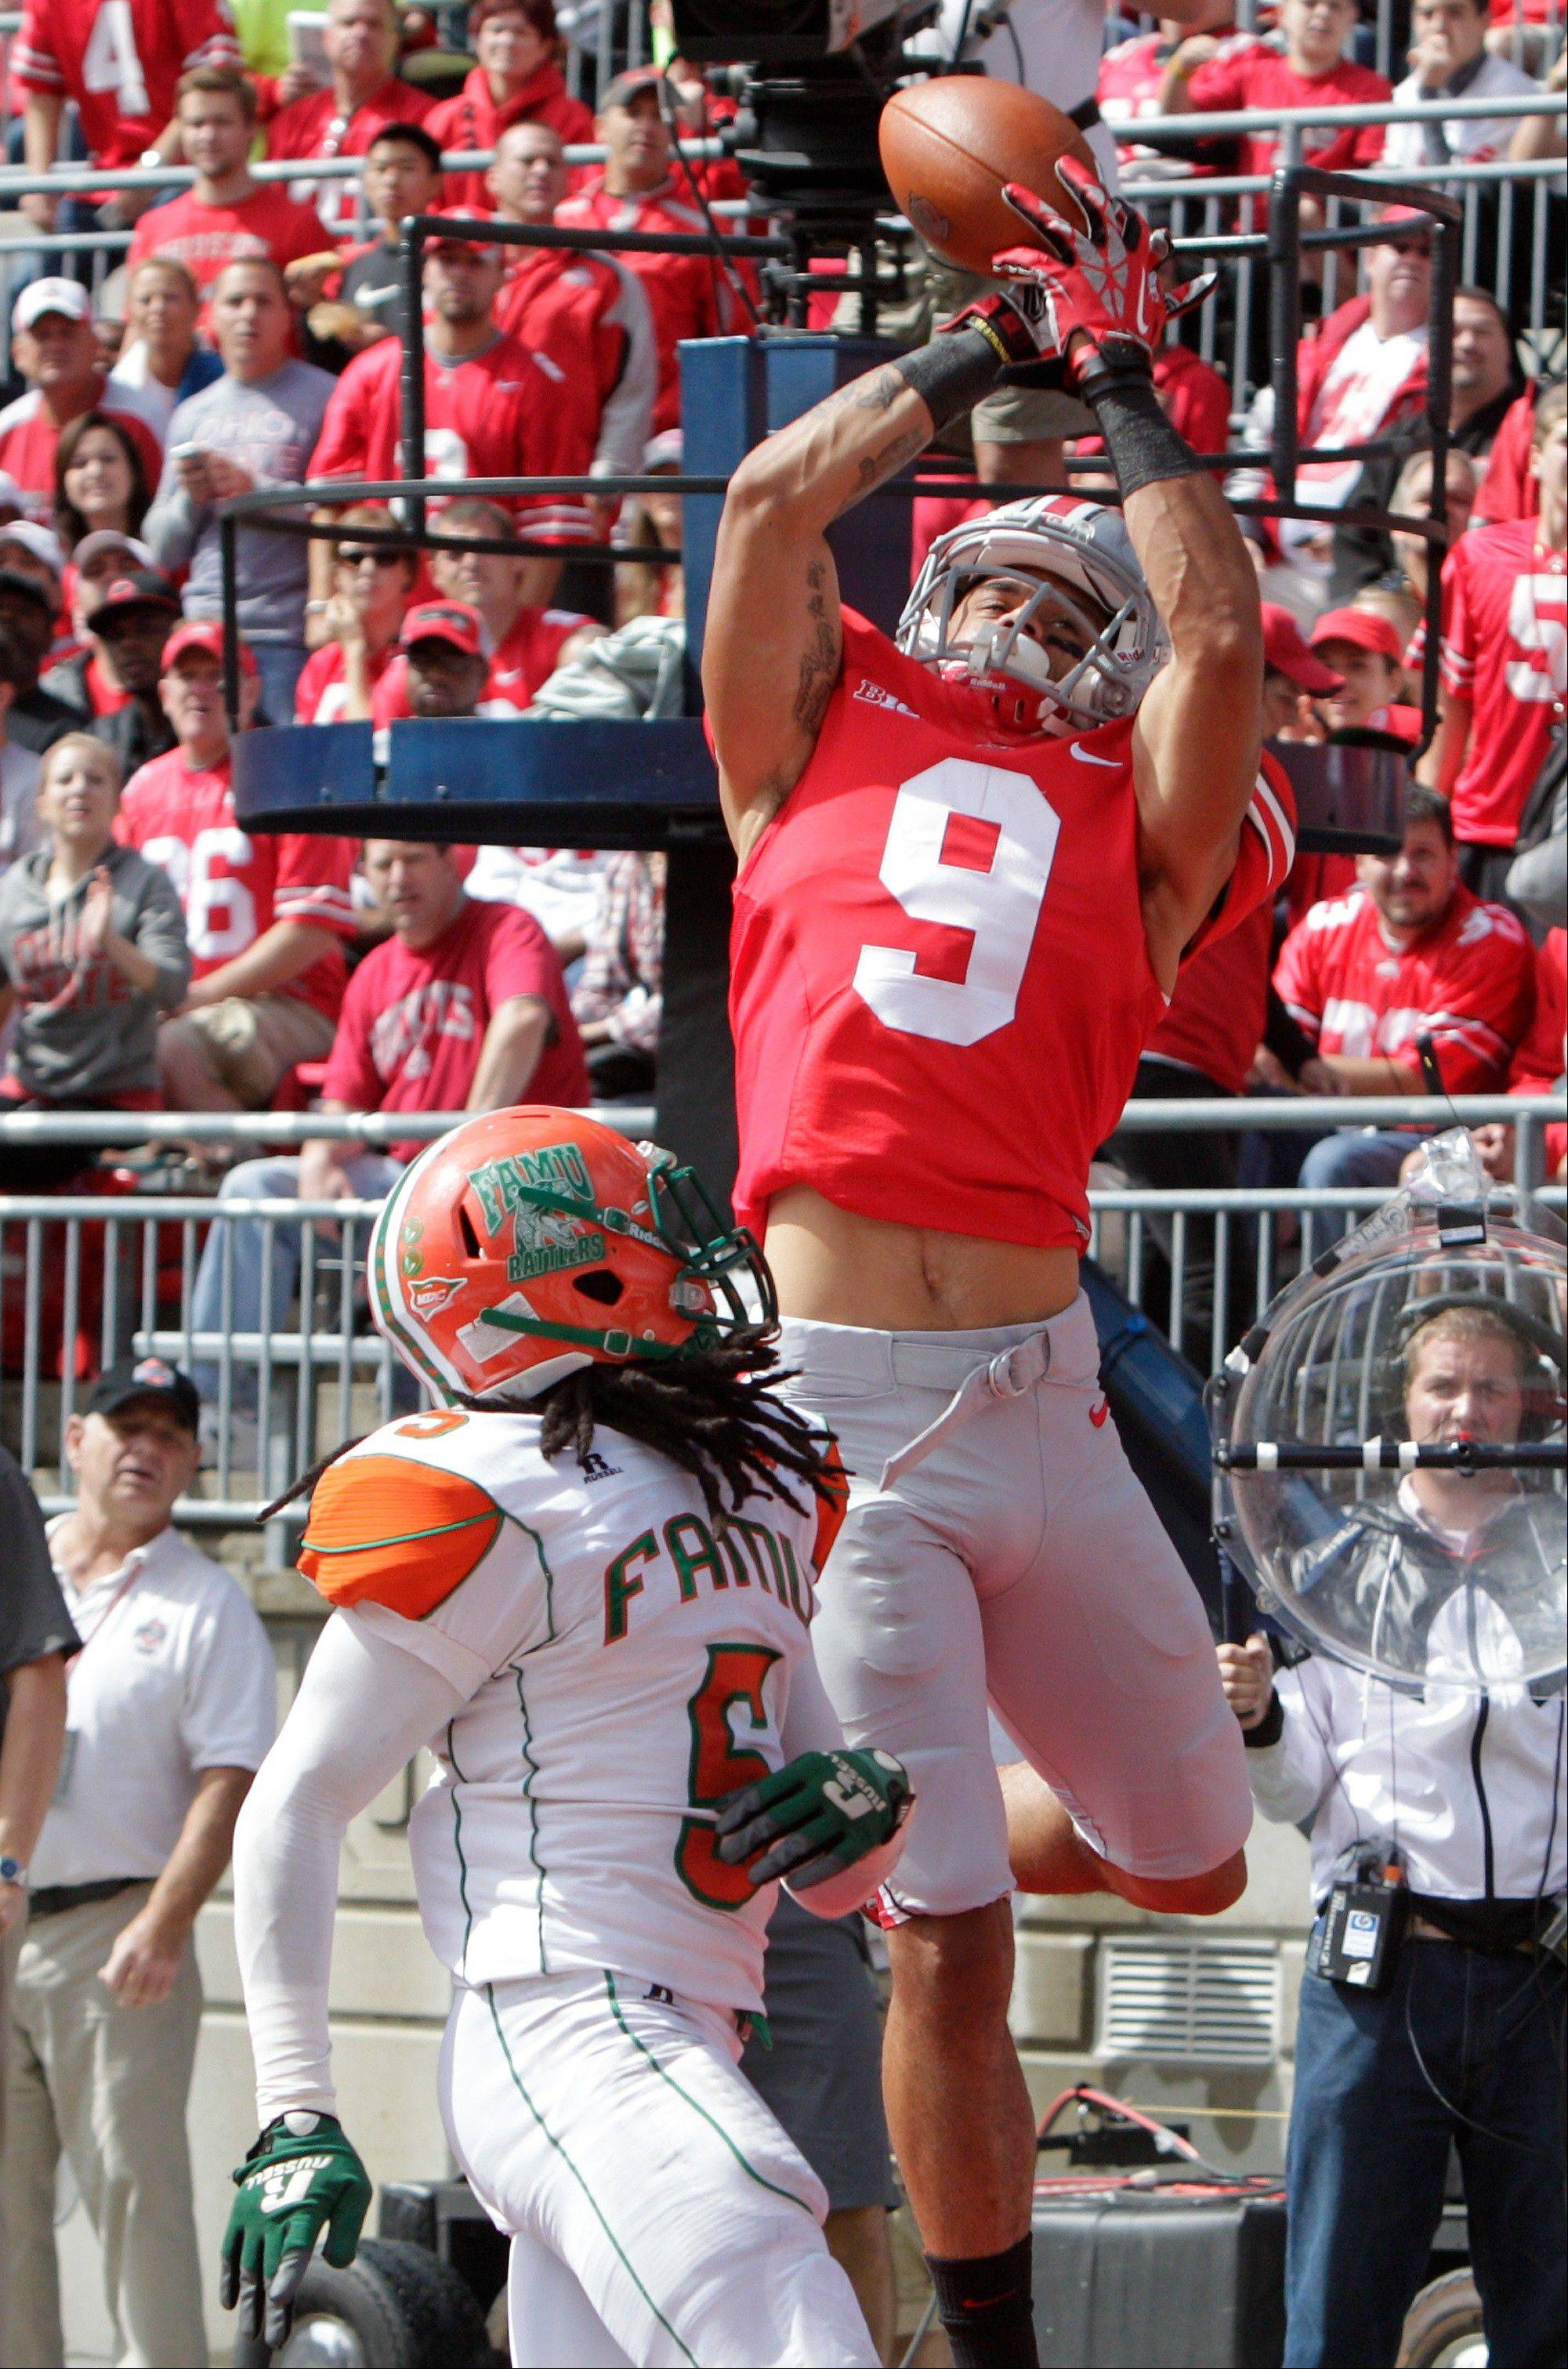 Ohio State wide receiver Devin Smith, top, catches a touchdown pass over Florida A&M cornerback Patrick Aiken during the first quarter of the Sept. 21 game in Columbus, Ohio. No fewer than 15 times, No. 4 Ohio State has completed a touchdown pass that has covered at least 20 yards.